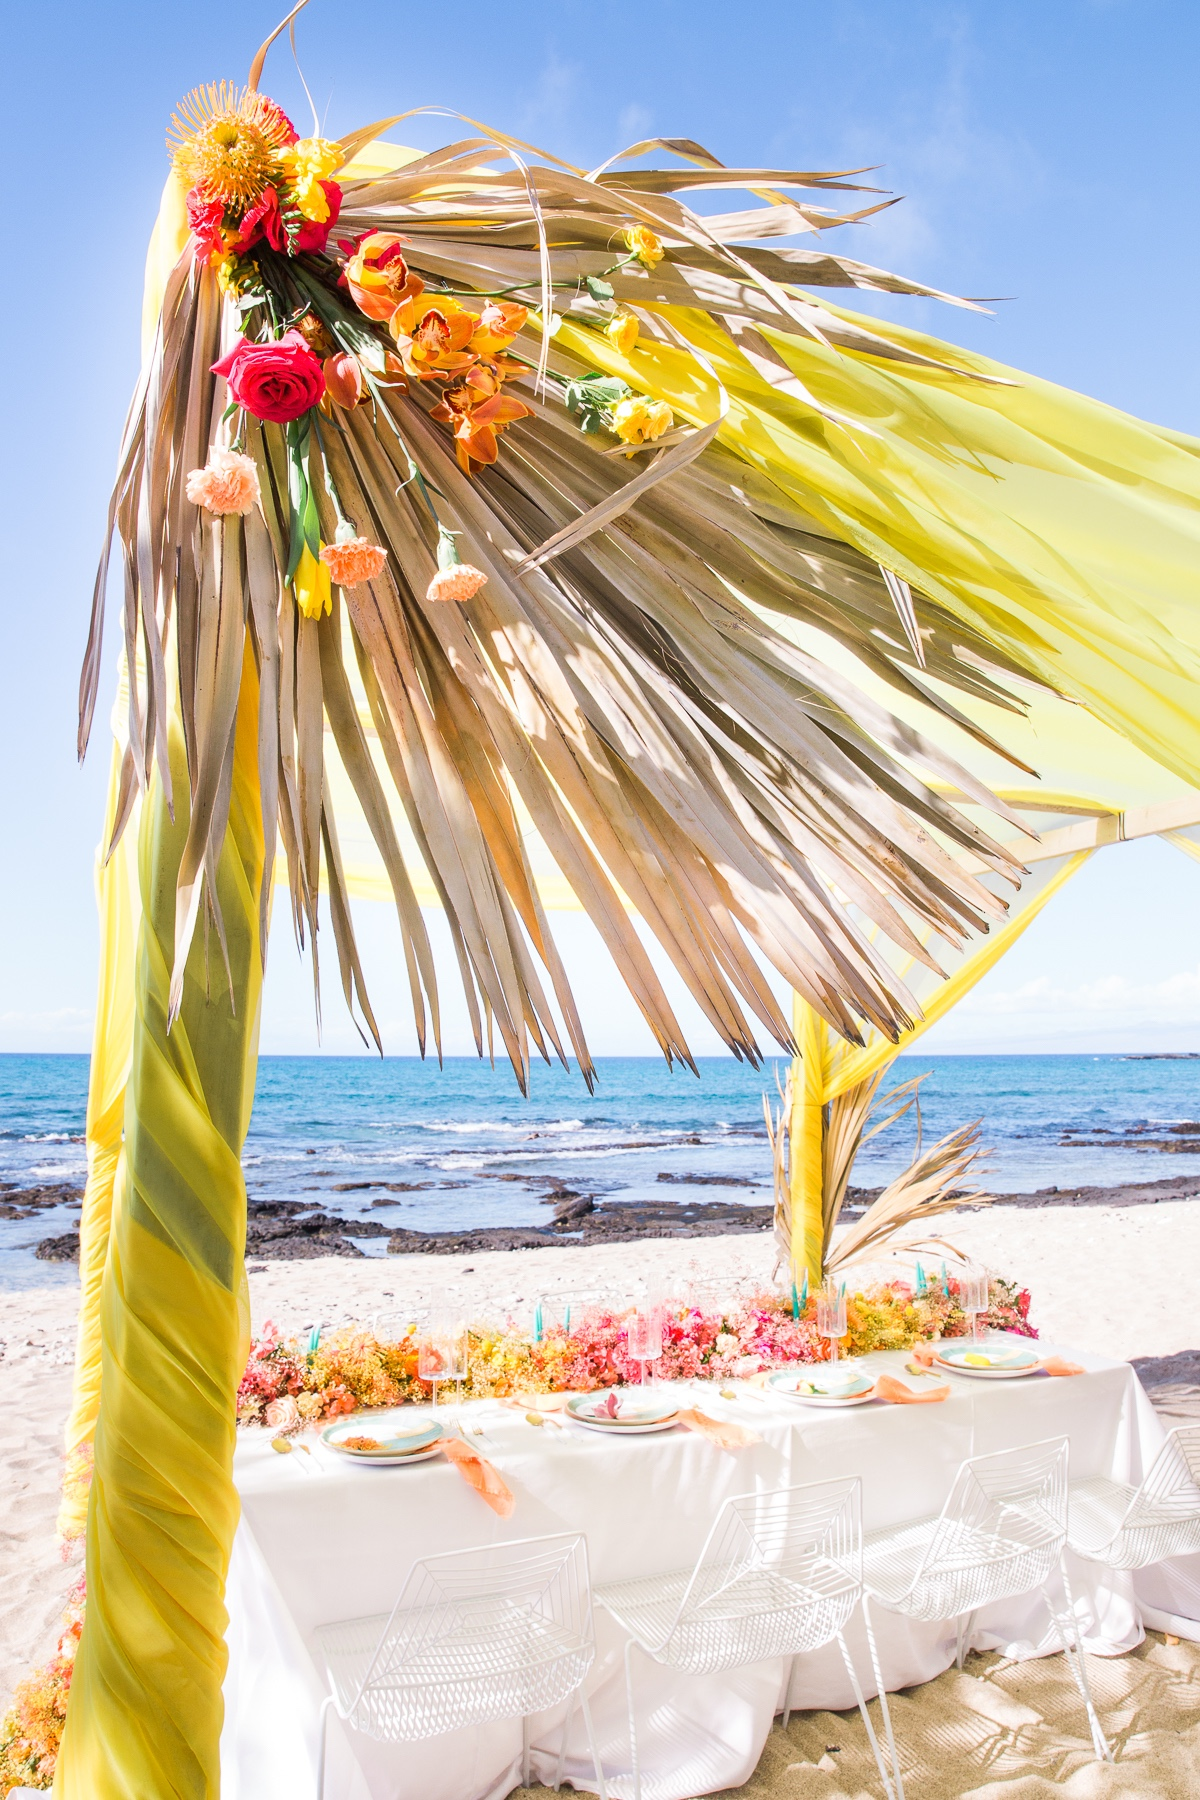 decorating a beach canopy